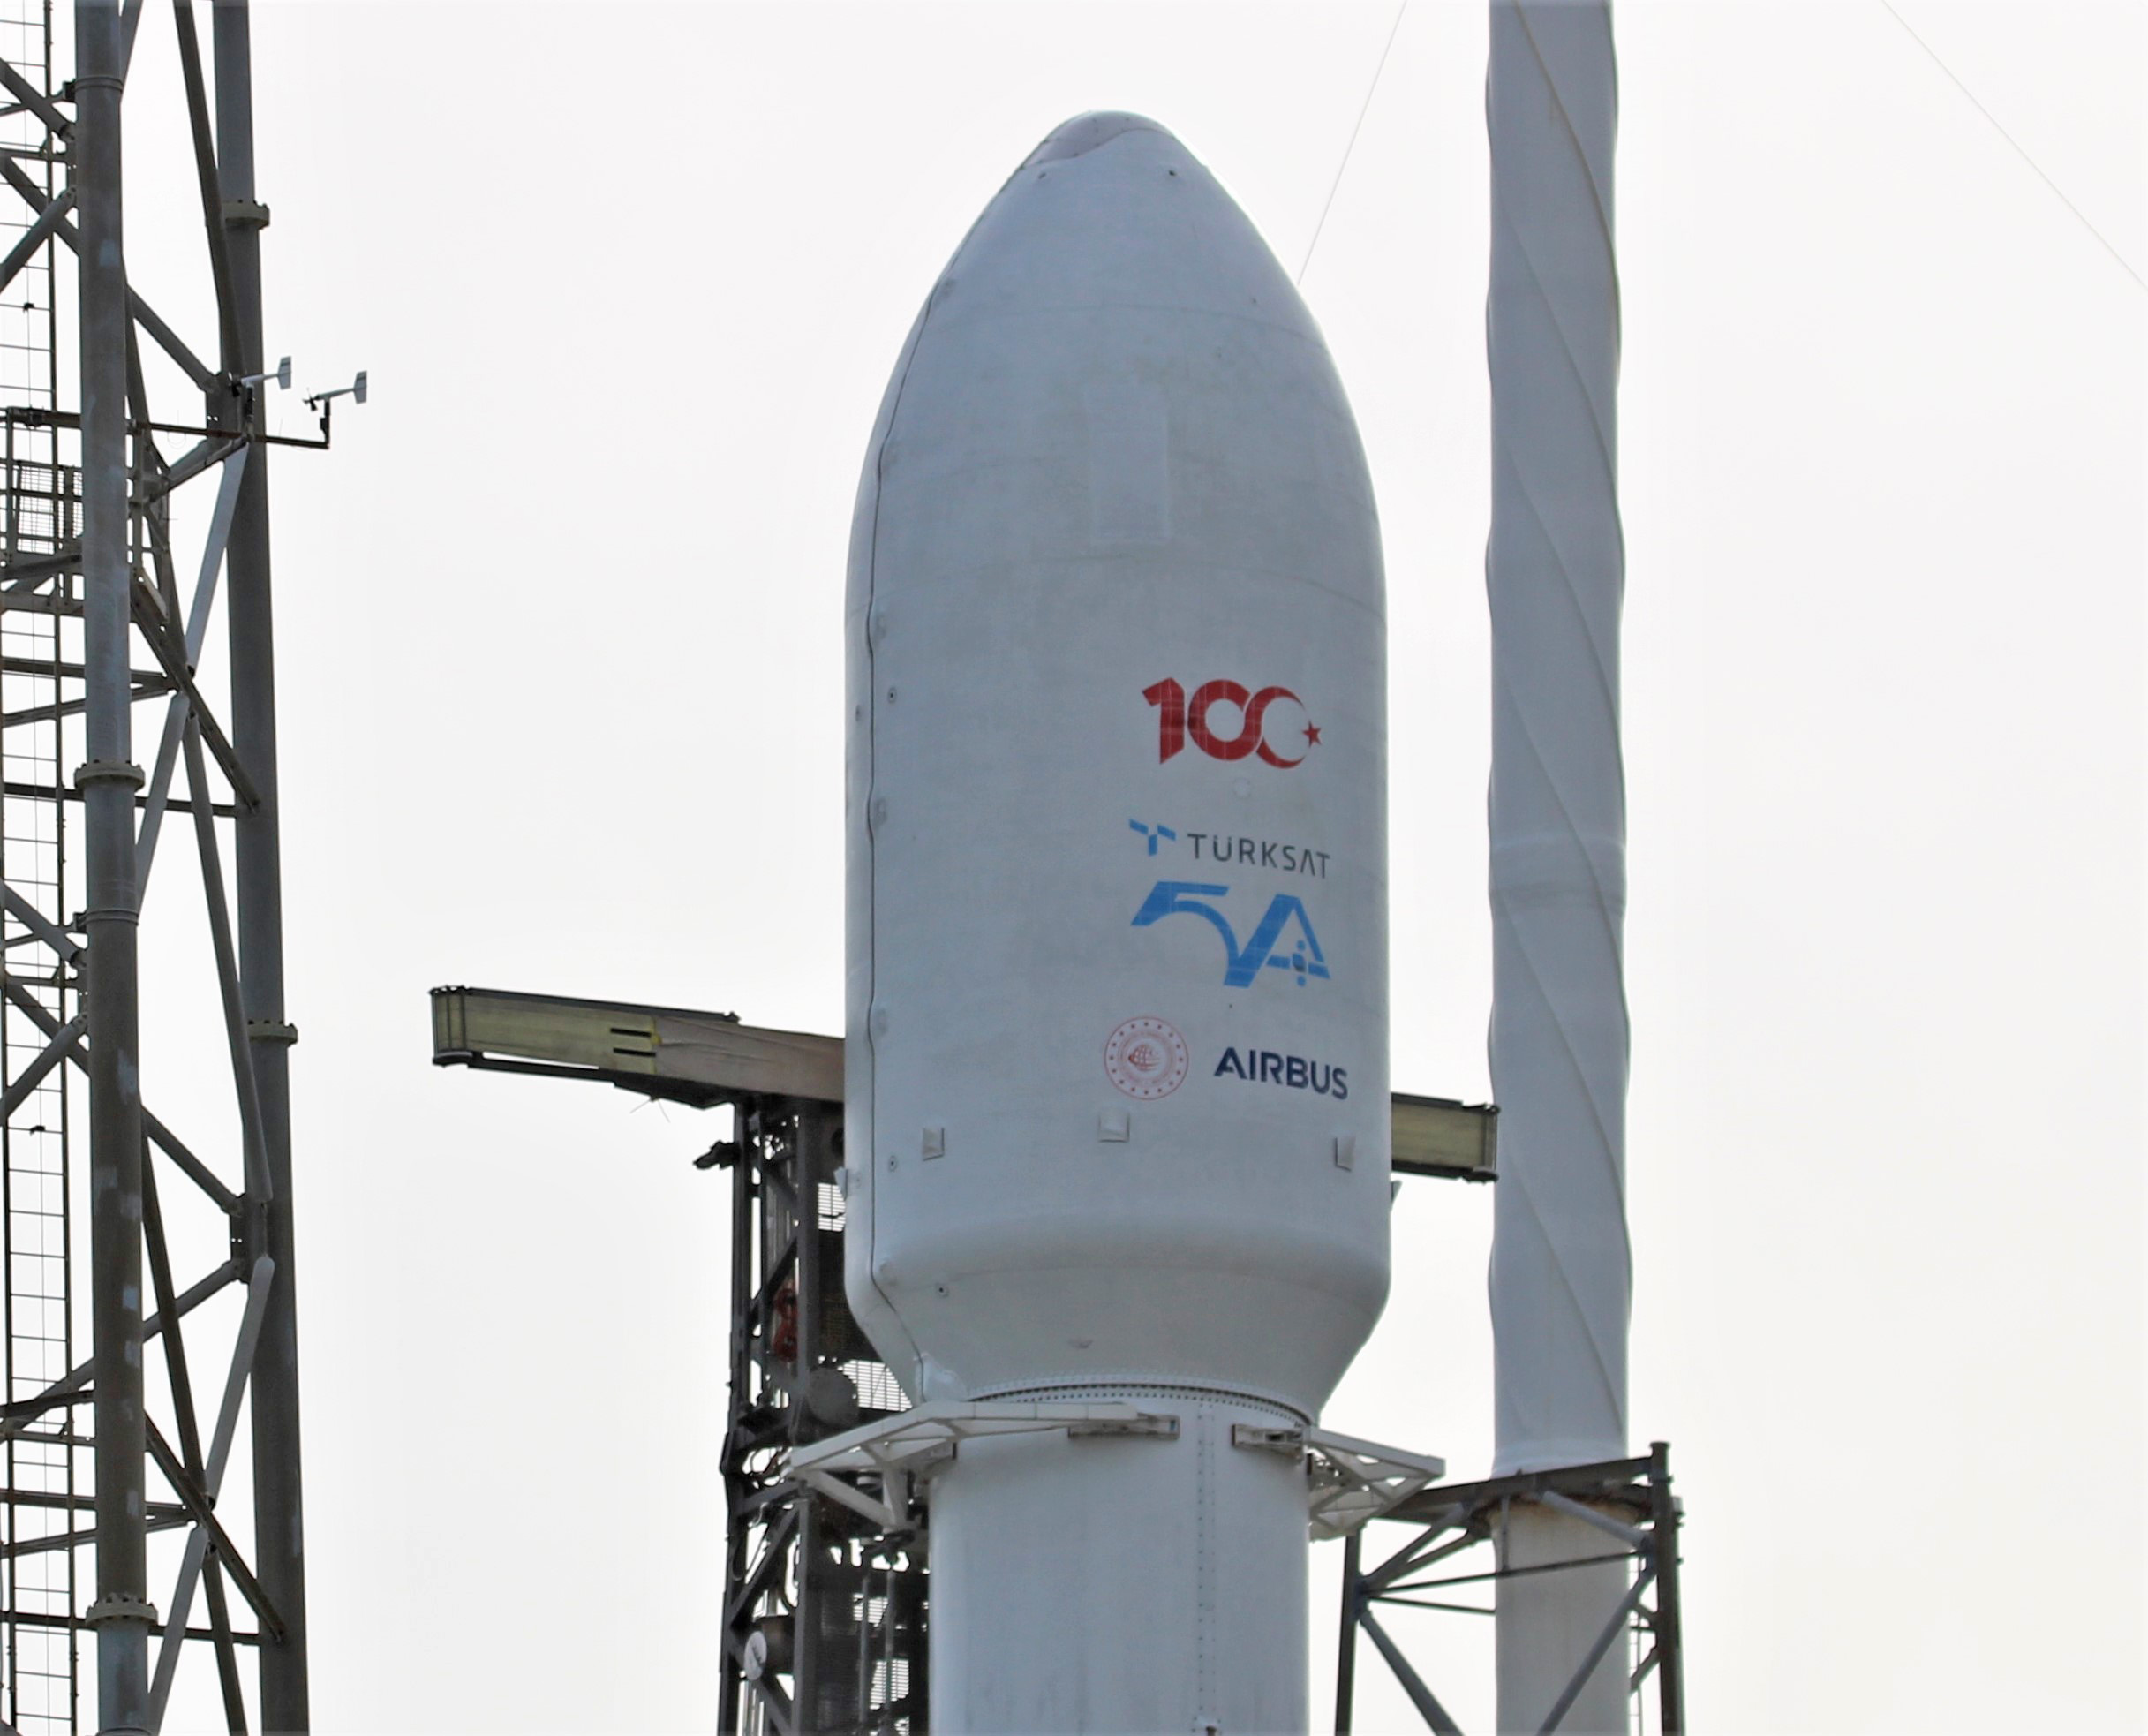 Turkish Türksat 5A Comsat Poised for SpaceX Falcon 9 Nighttime Jan. 7: Watch Live/Photos